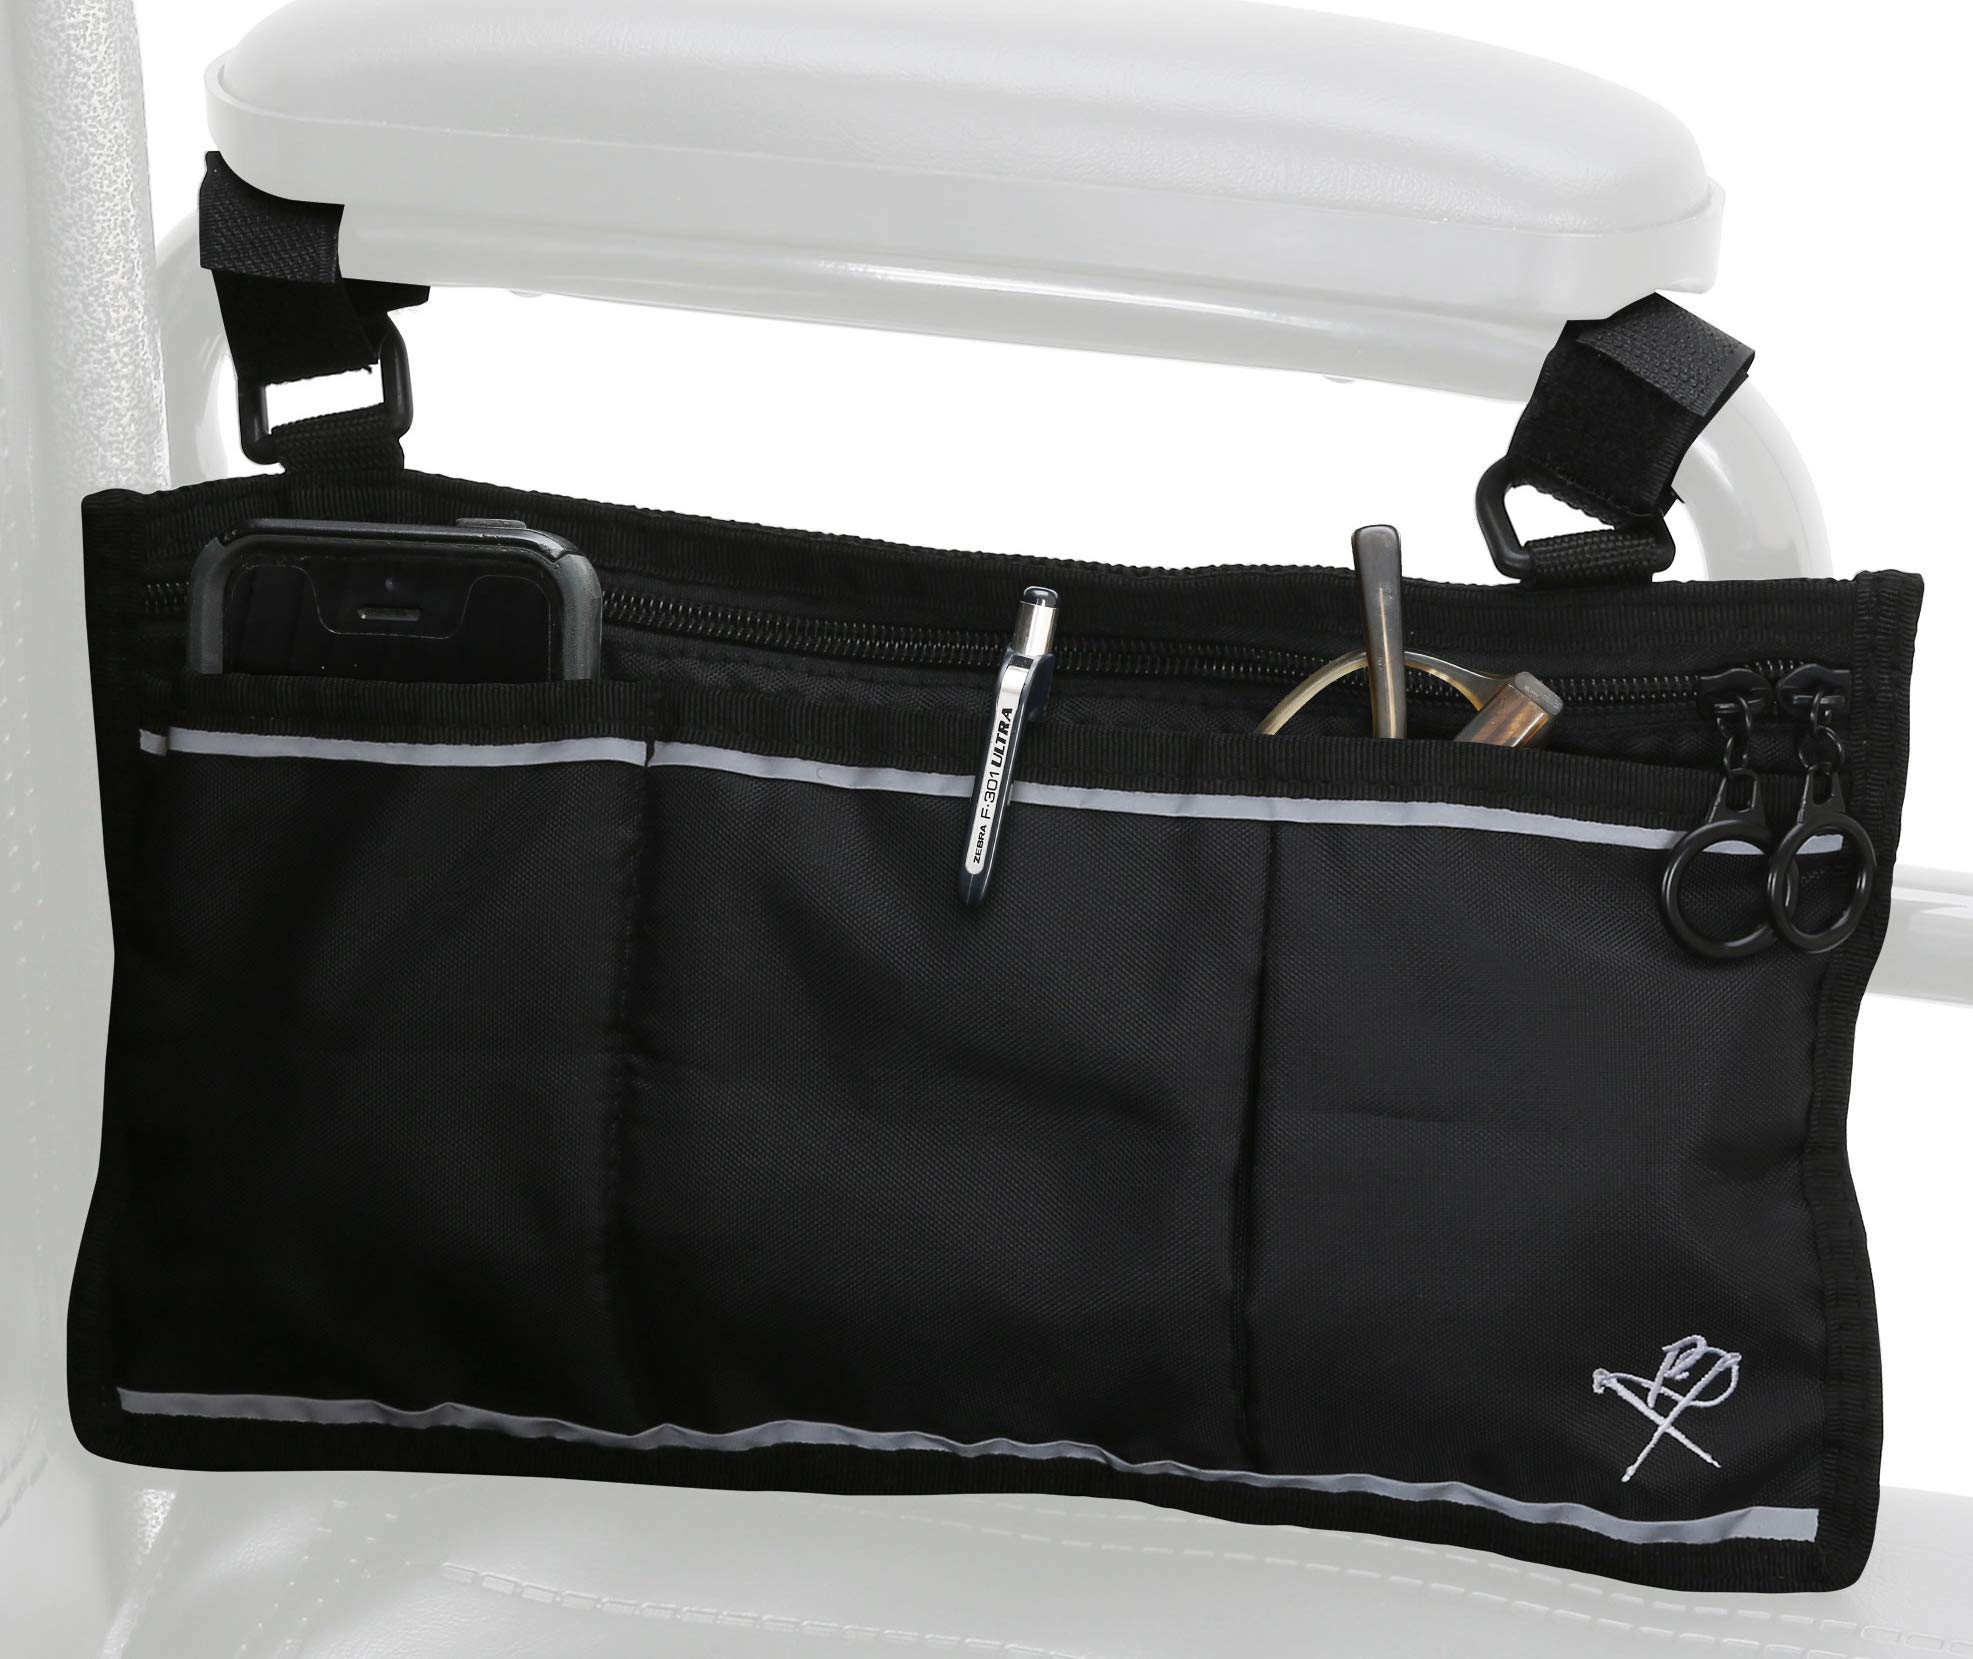 Pembrook Wheelchair Side Bag with Pouches - Great for Electric Wheelchairs, Electric Scooter, Walker Accessories, Other Mobility Devices - Lightweight Nurse Bag and Organizer for Medical Chairs by Pembrook